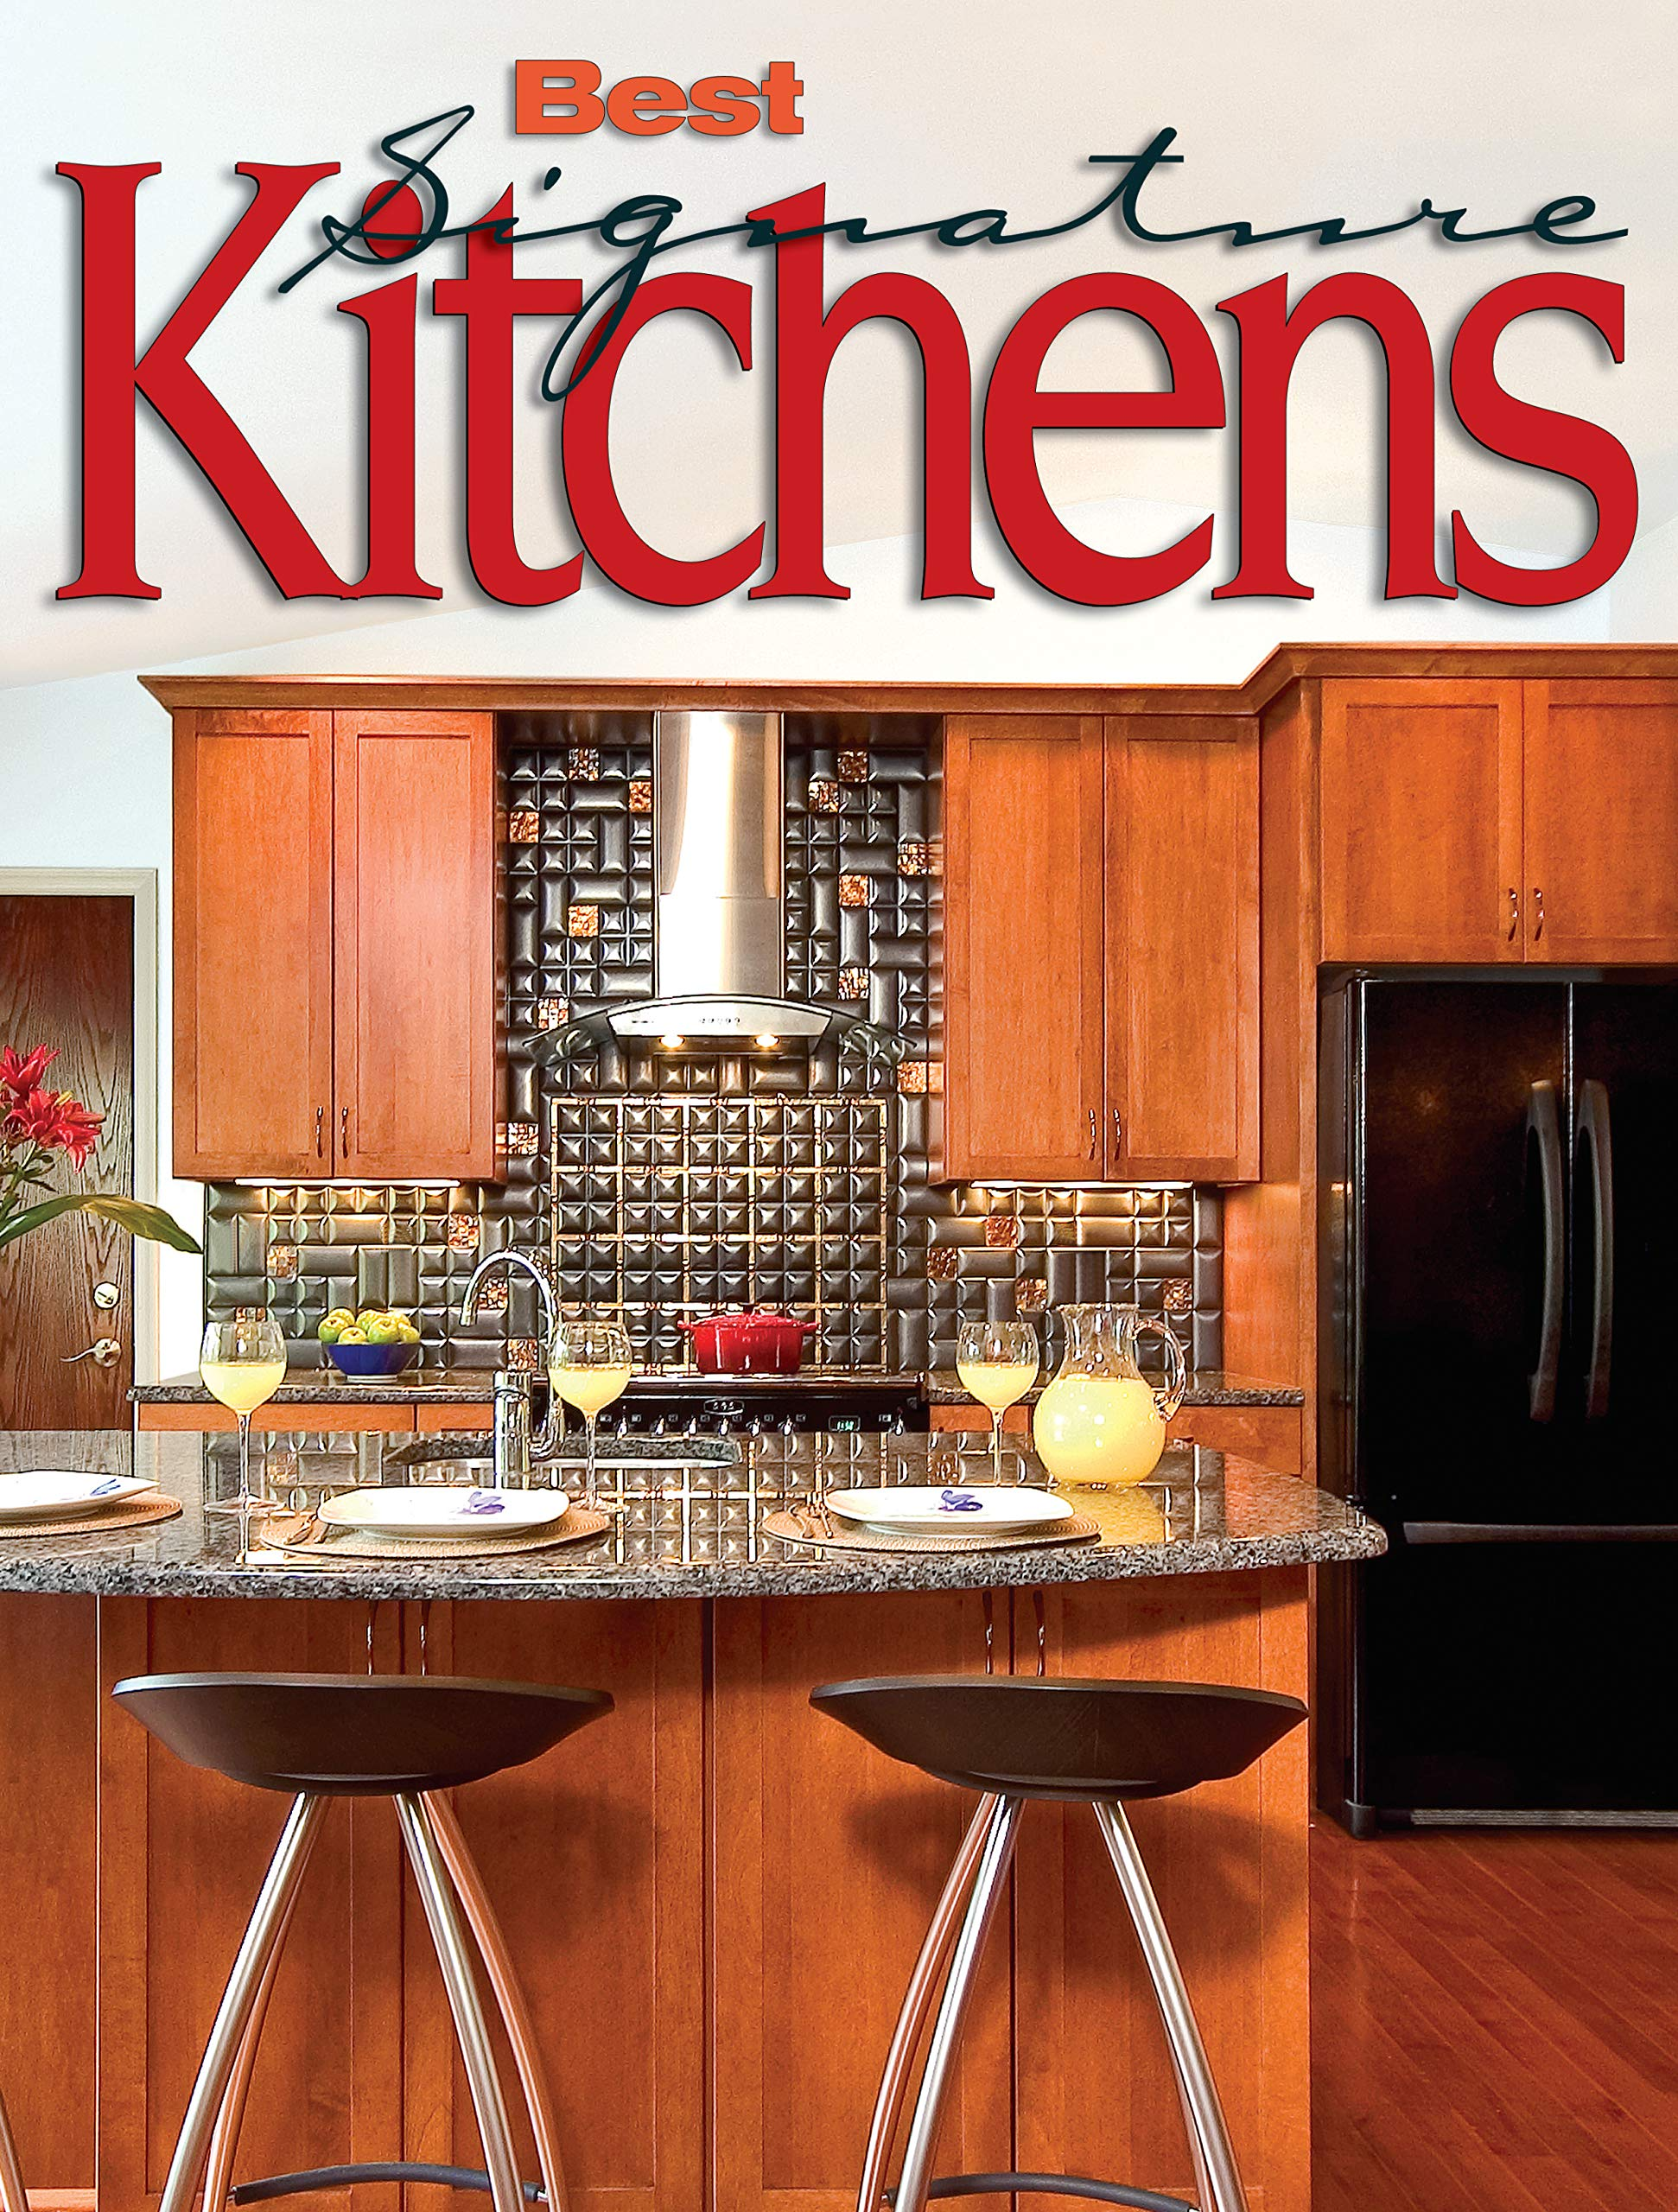 Best Signature Kitchens Over 100 Fabulous From Top Designers Home Decorating Editors Of Creative Homeowner Kitchen 9781580114554 Amazon Com Books